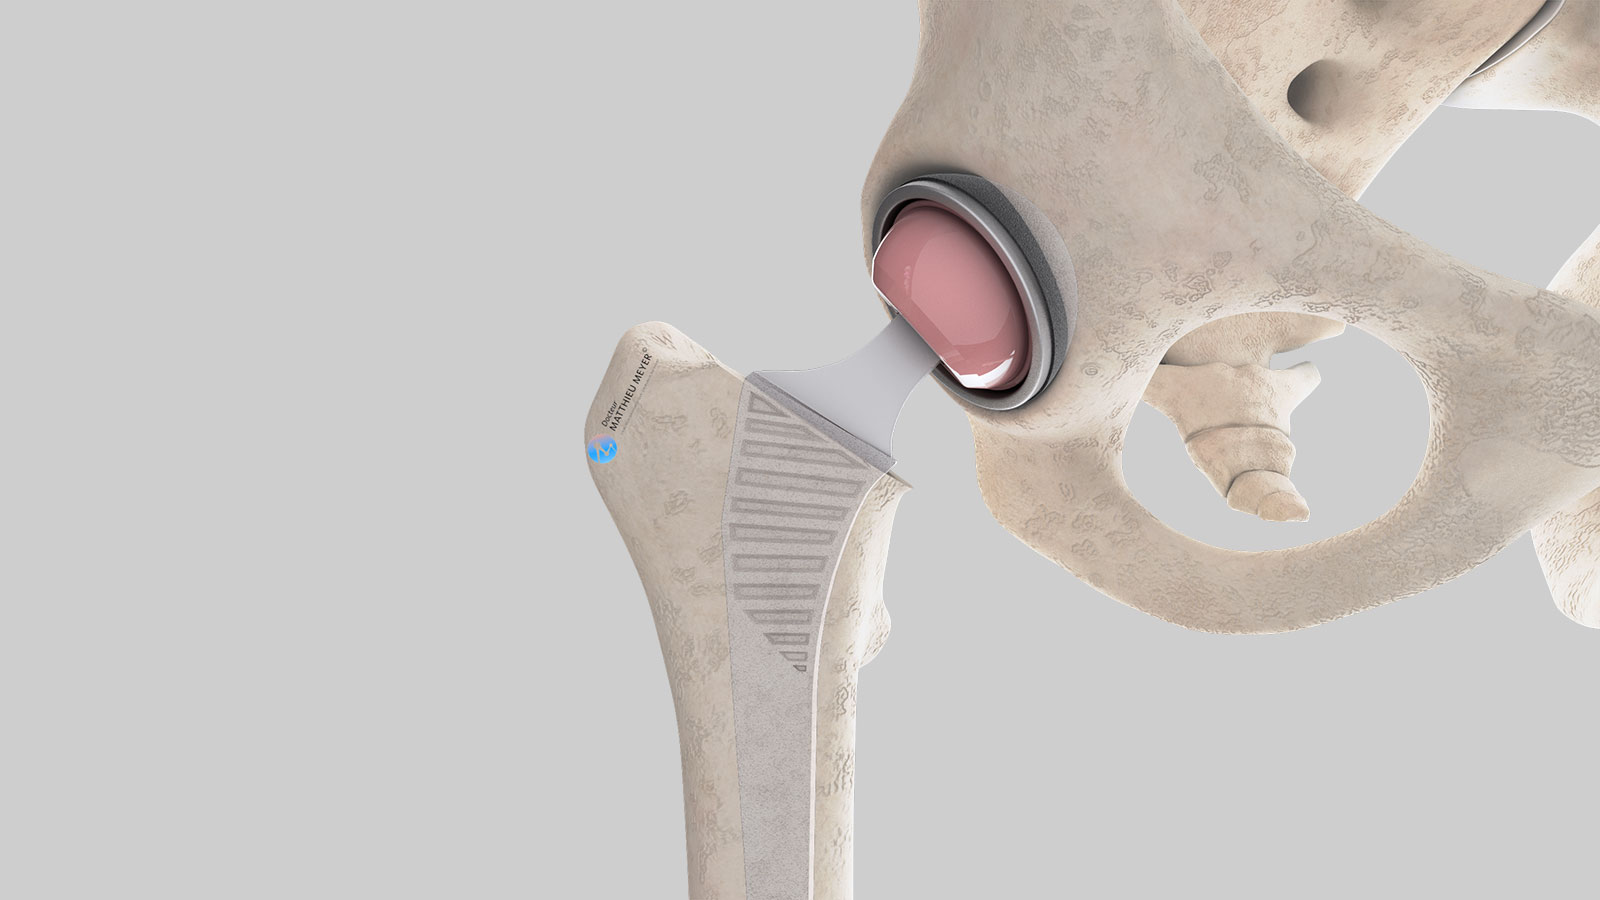 Total hip prothesis in place